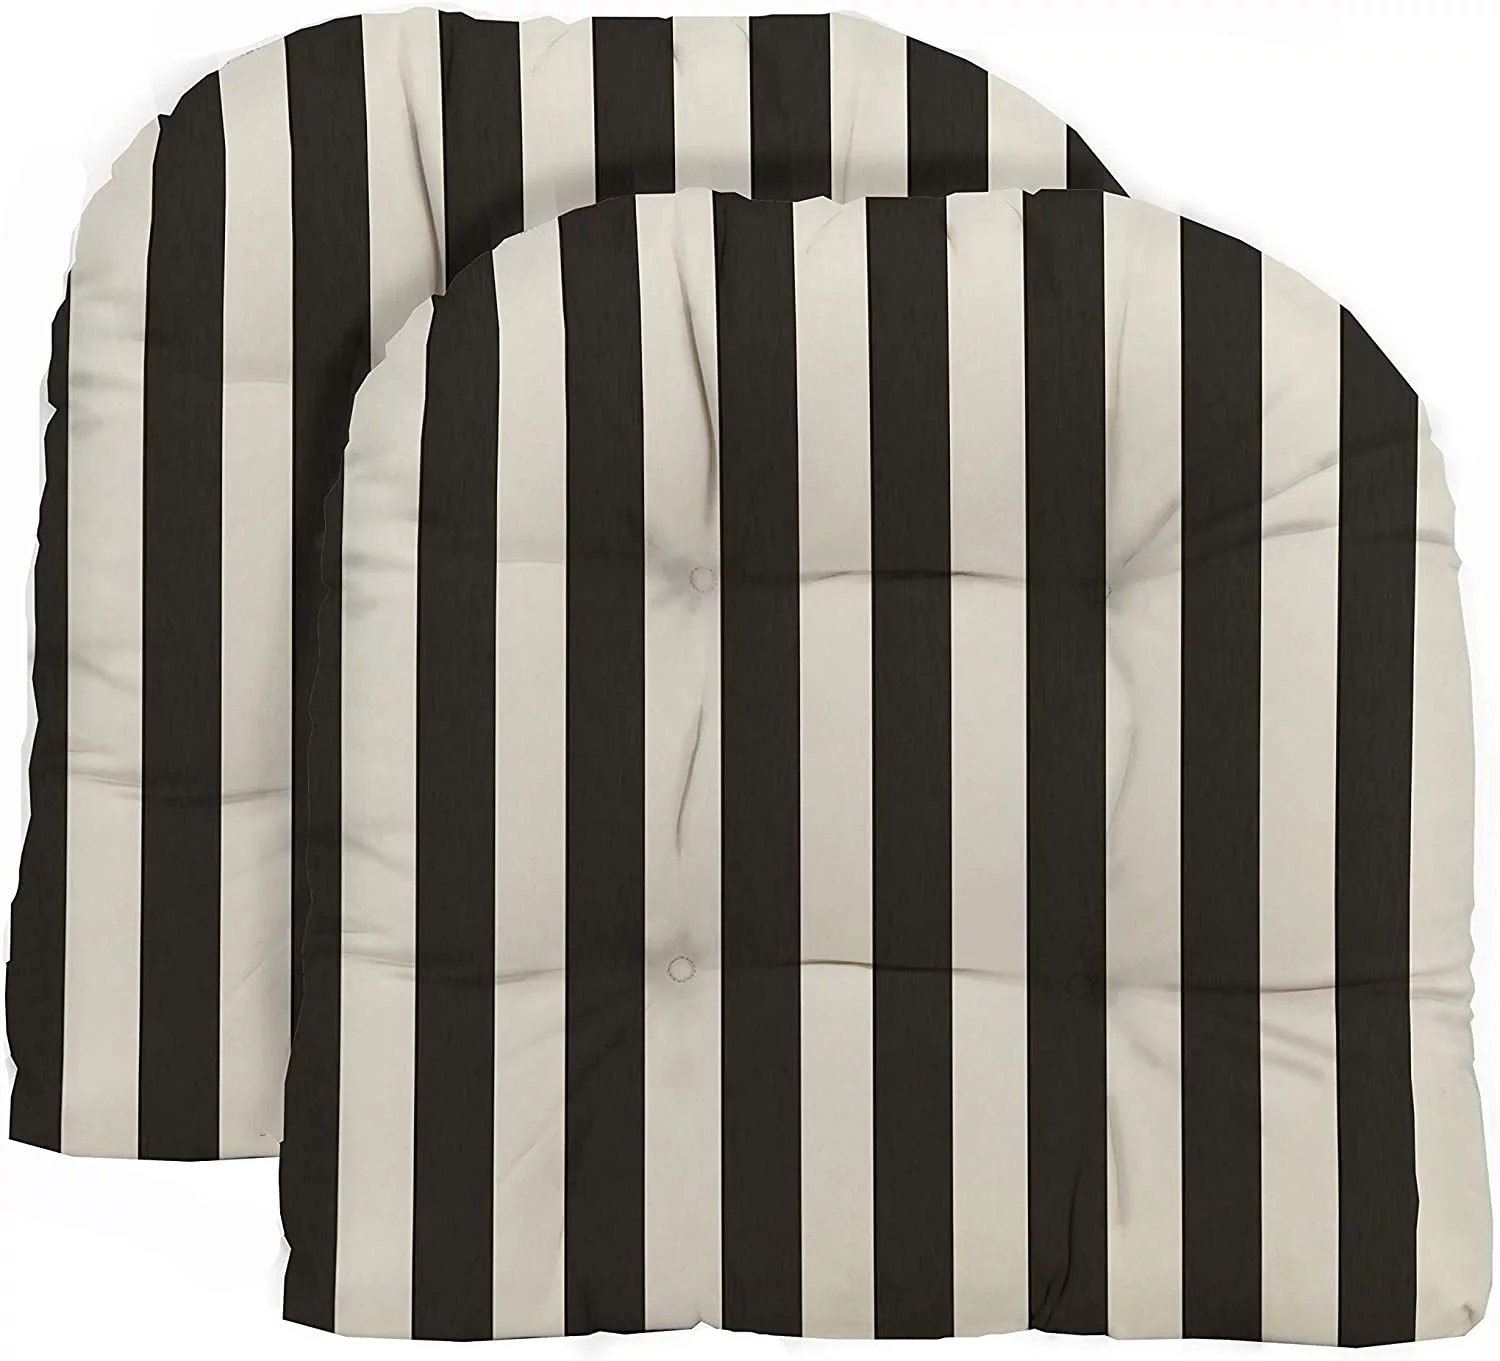 rsh decor indoor outdoor set of 2 u shape wicker tufted seat cushions patio weather resistant black and white stripe 19 x 19